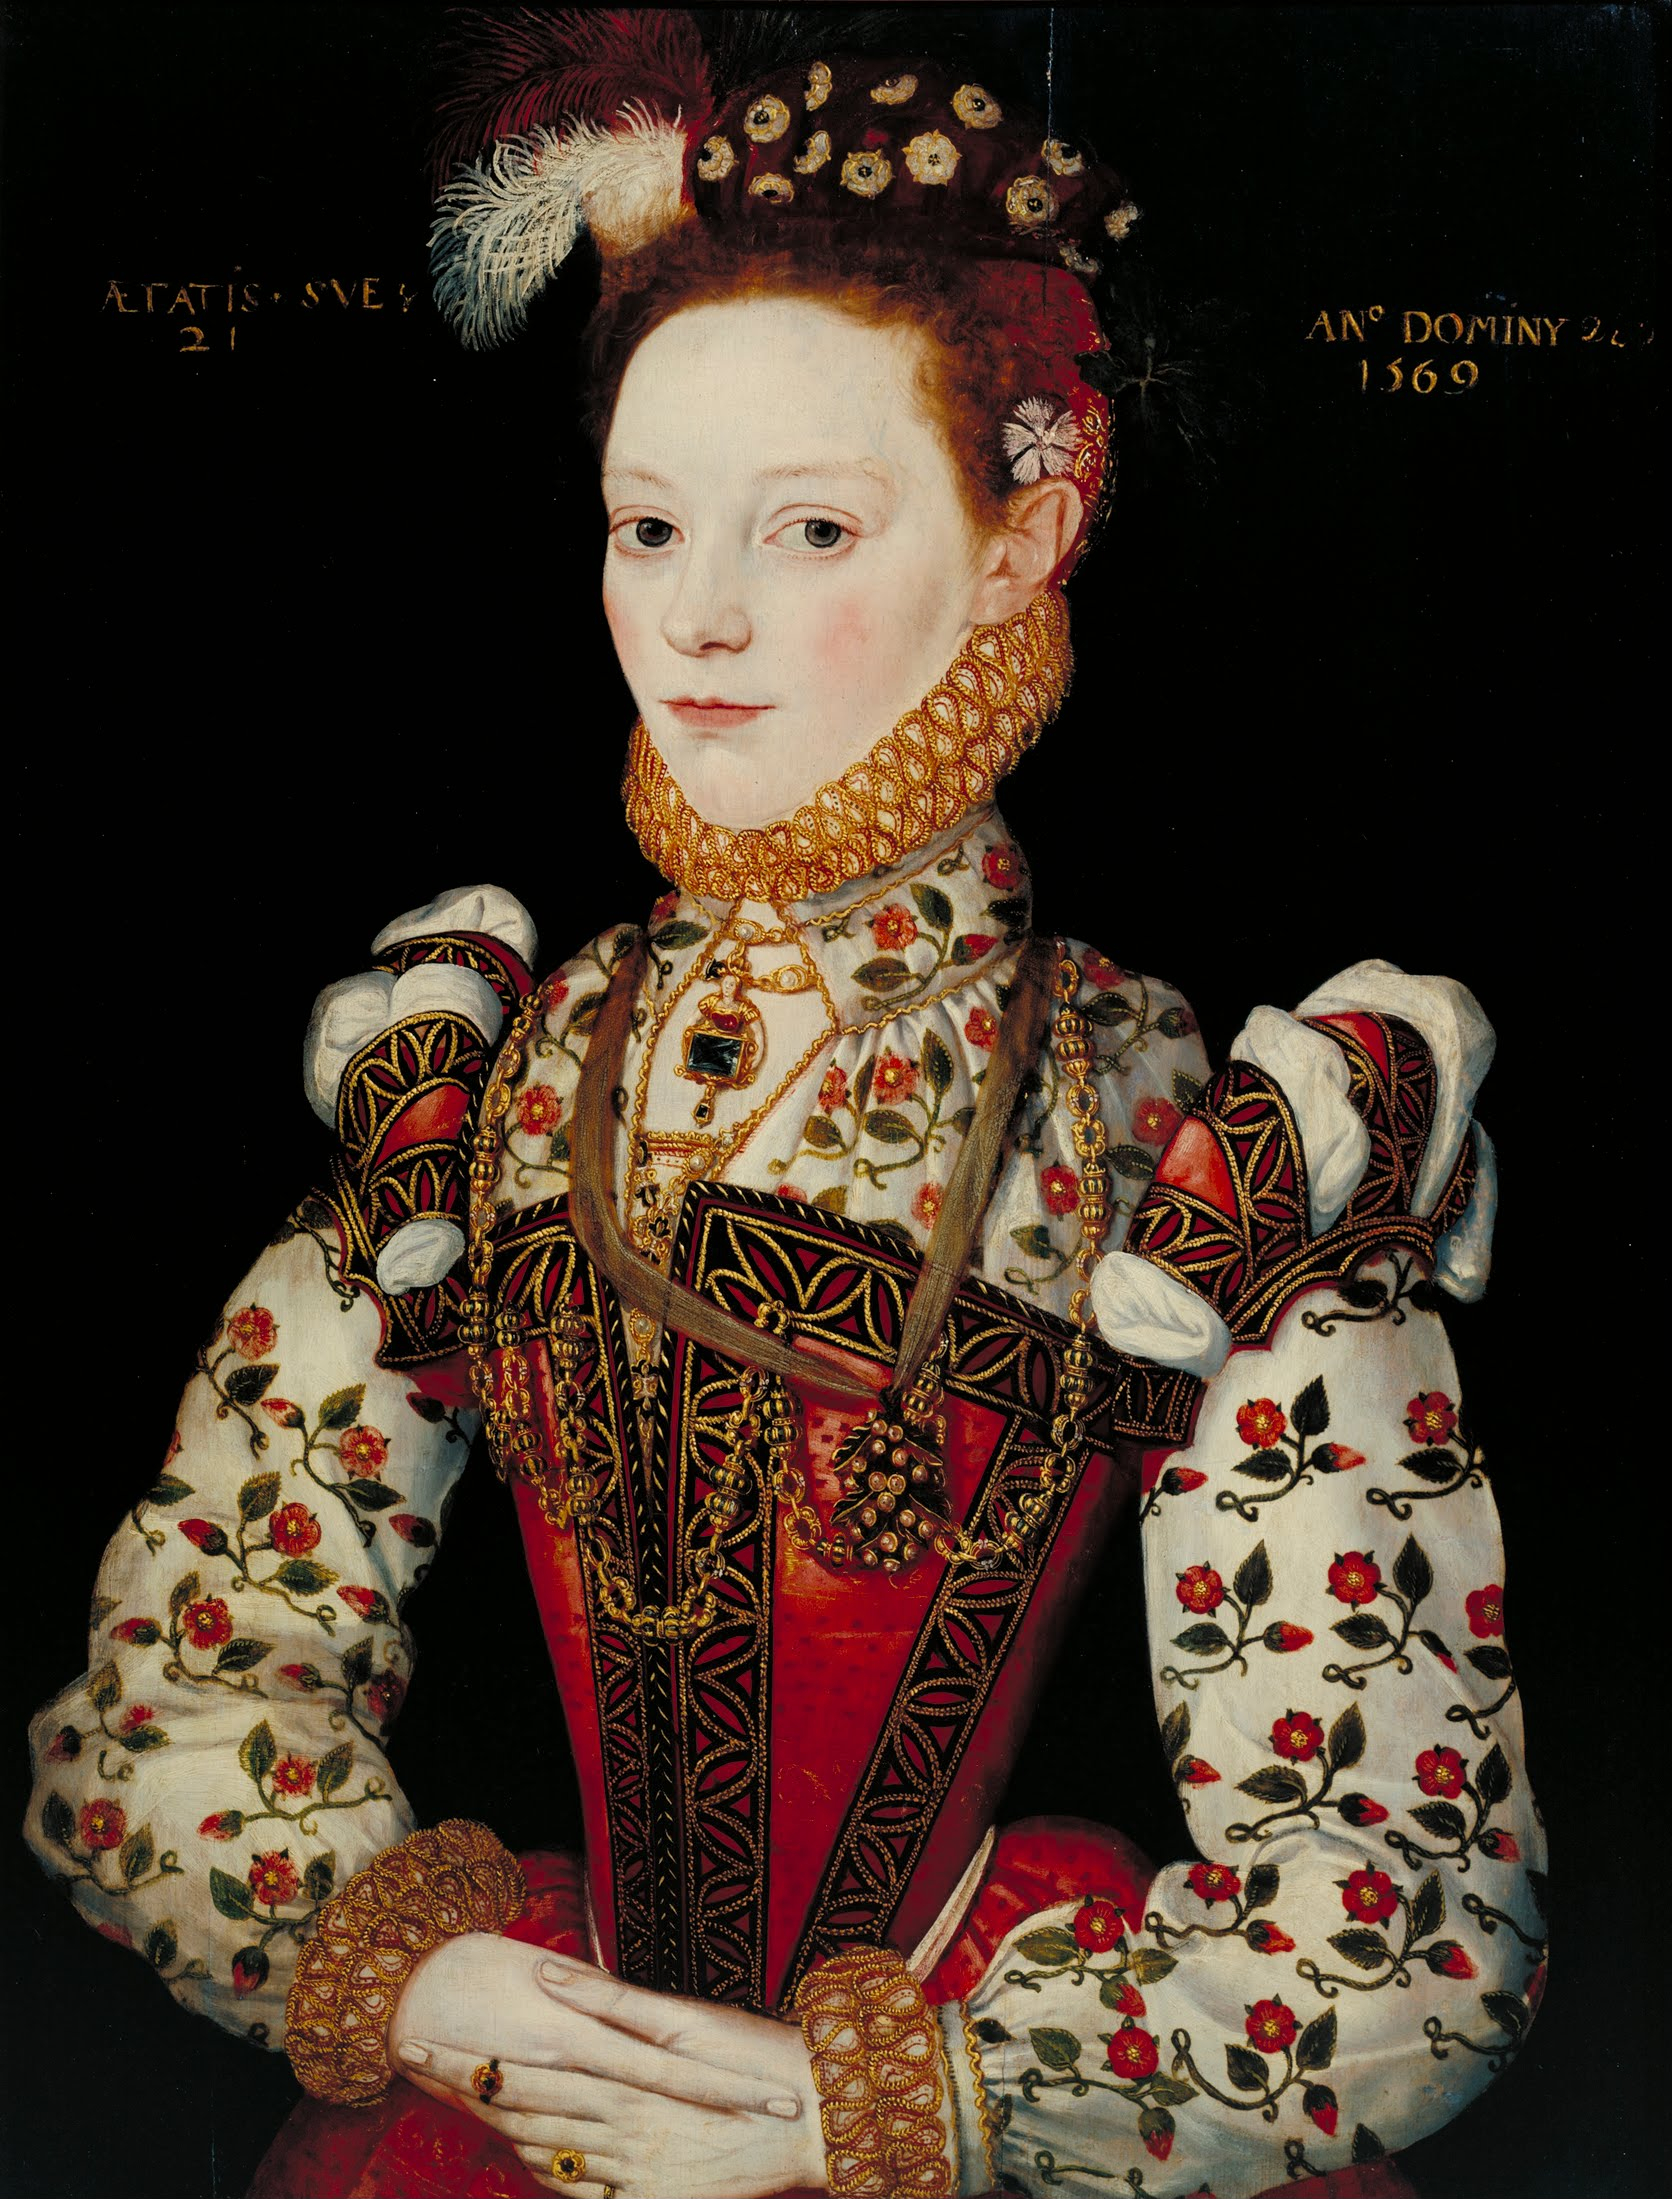 Portrait possibly depicting Helena Snakenborg. Artist unknown, 1569. Source: Wikimedia Commons